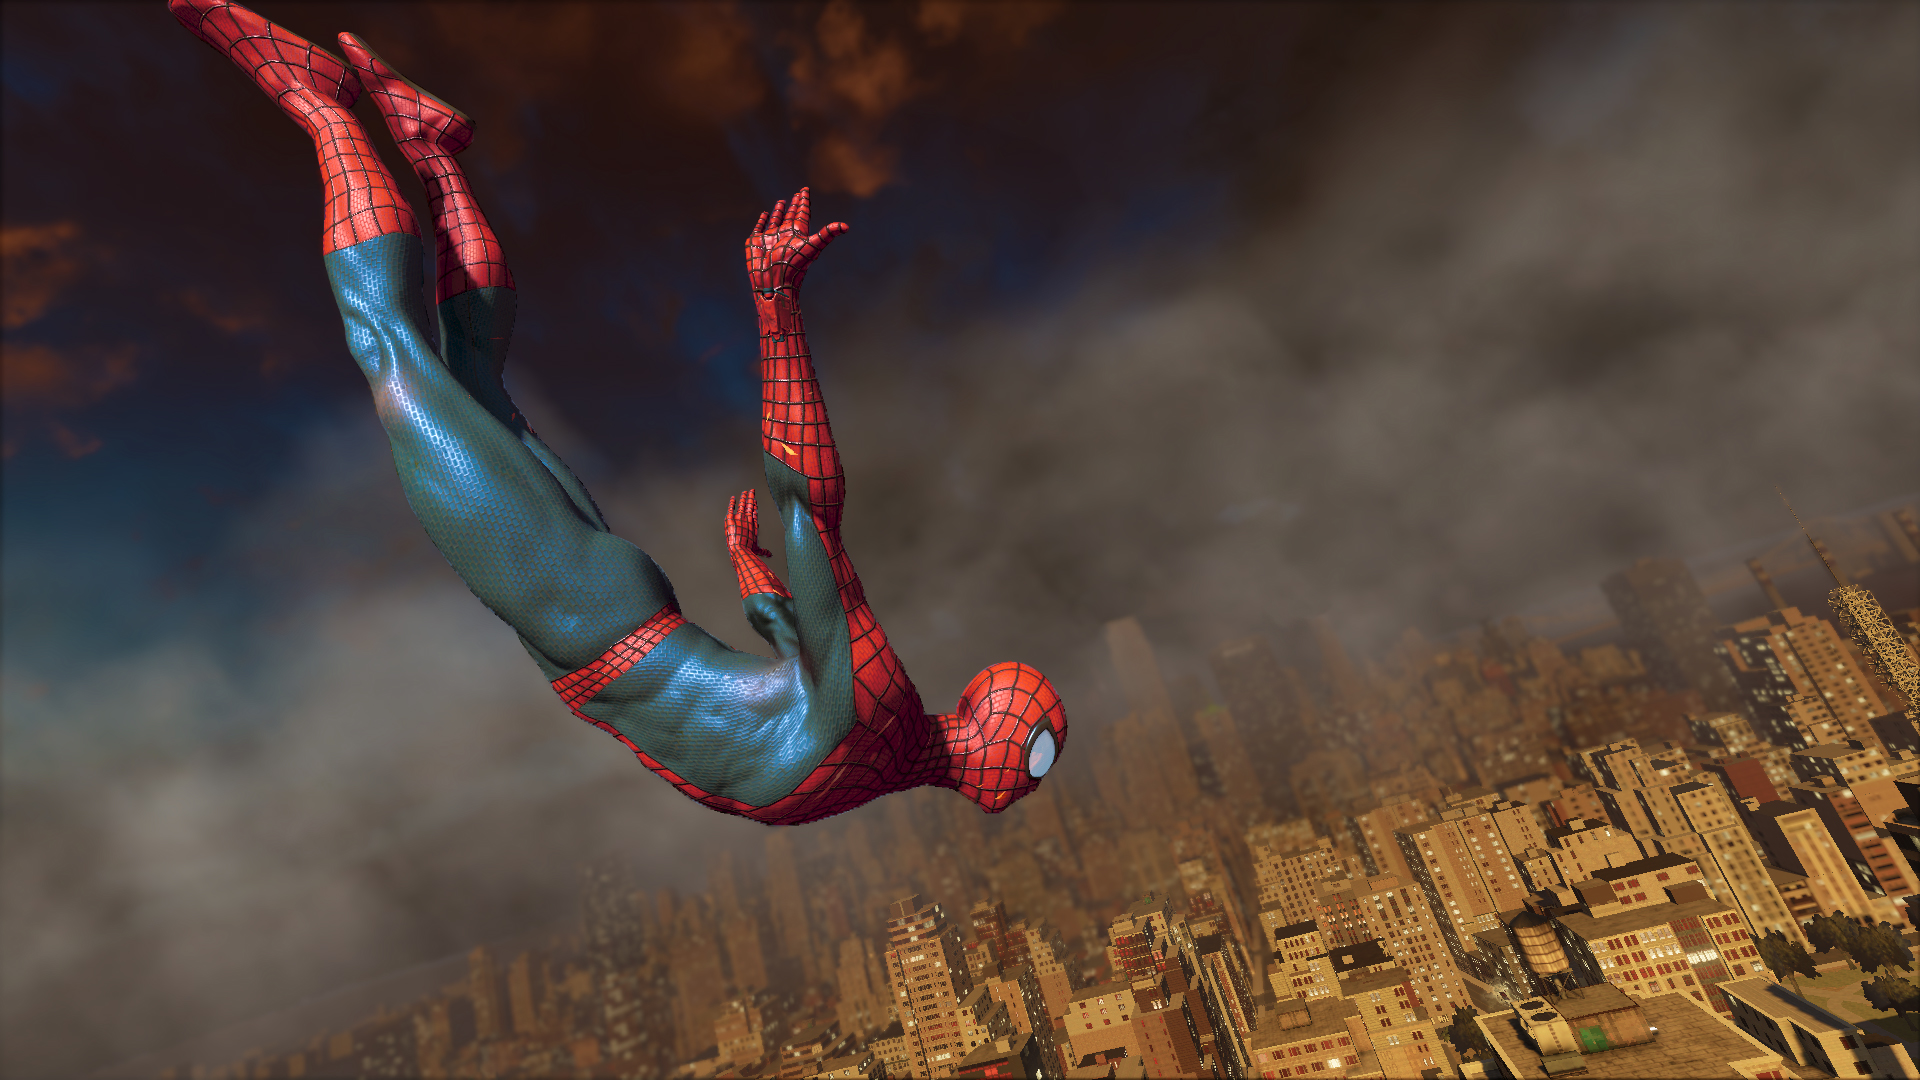 Amazing Spider-Man 2 footage shows web-swinging & combat ...